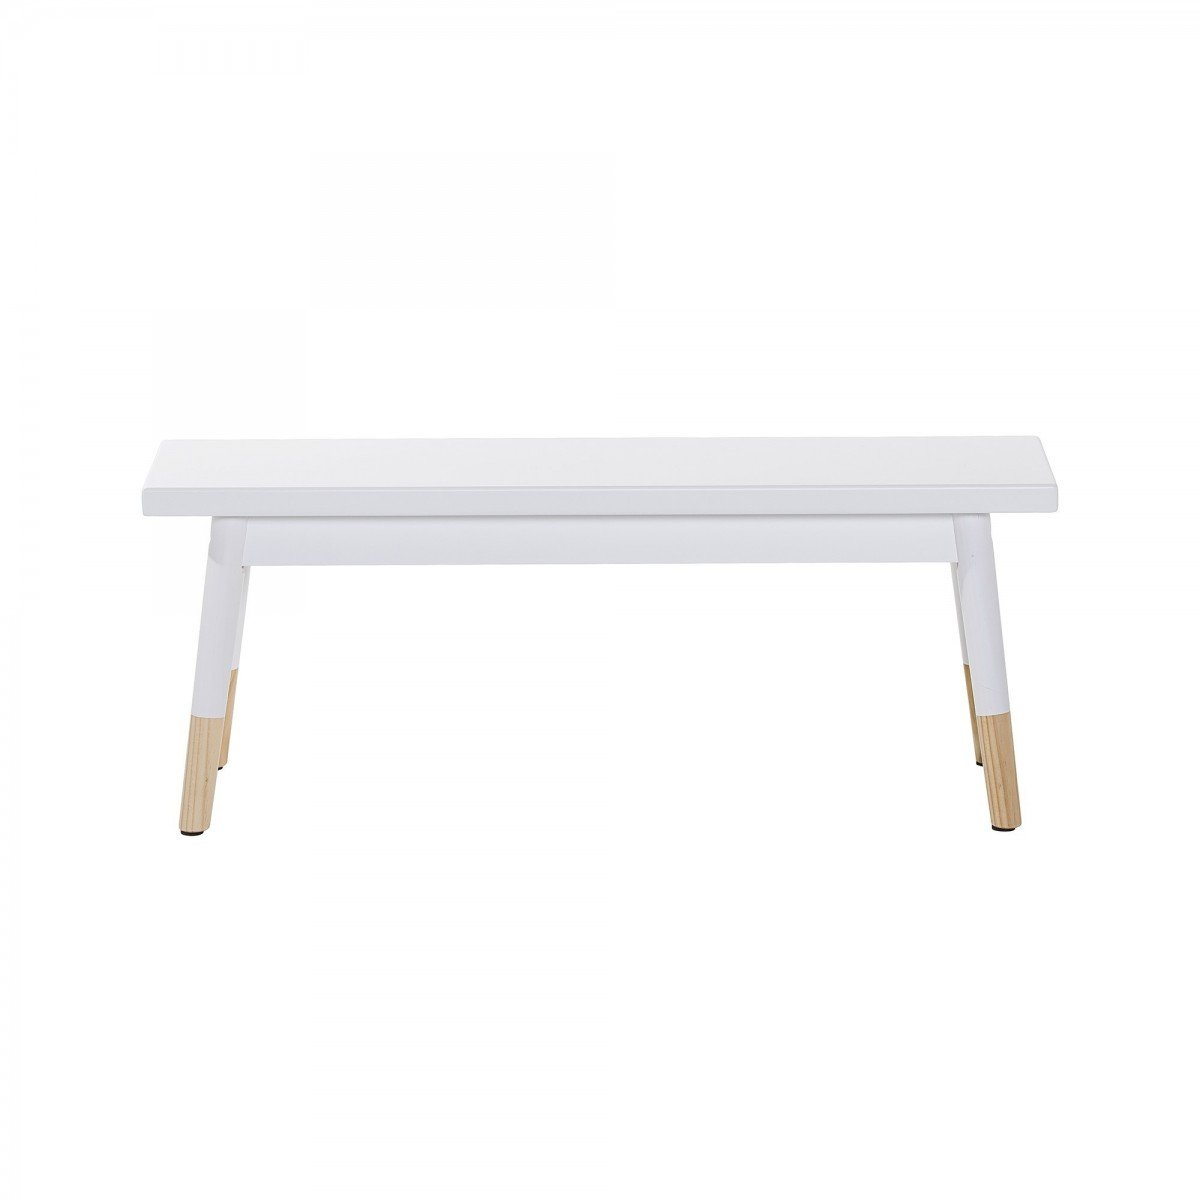 Banc Blanc Et Naturel Bloomingville Mini # Banc De Table Blanc